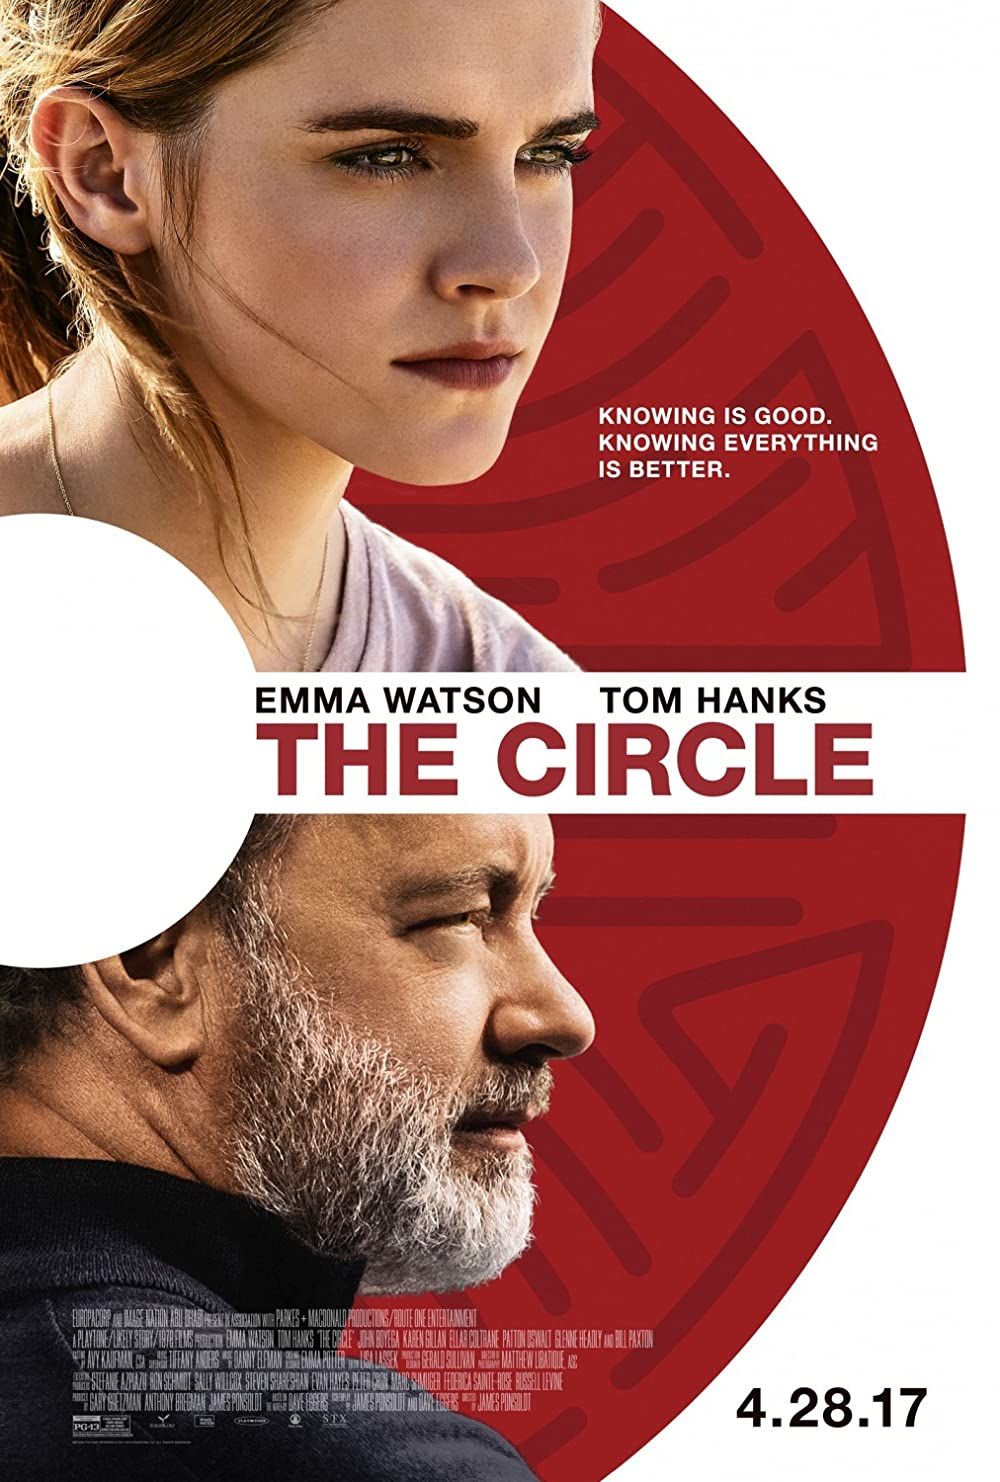 The Circle: Directed by James Ponsoldt. With Emma Watson, Ellar Coltrane, Glenne Headly, Bill Paxton. A woman lands a dream job at a powerful tech company called the Circle, only to uncover an agenda that will affect the lives of all of humanity.